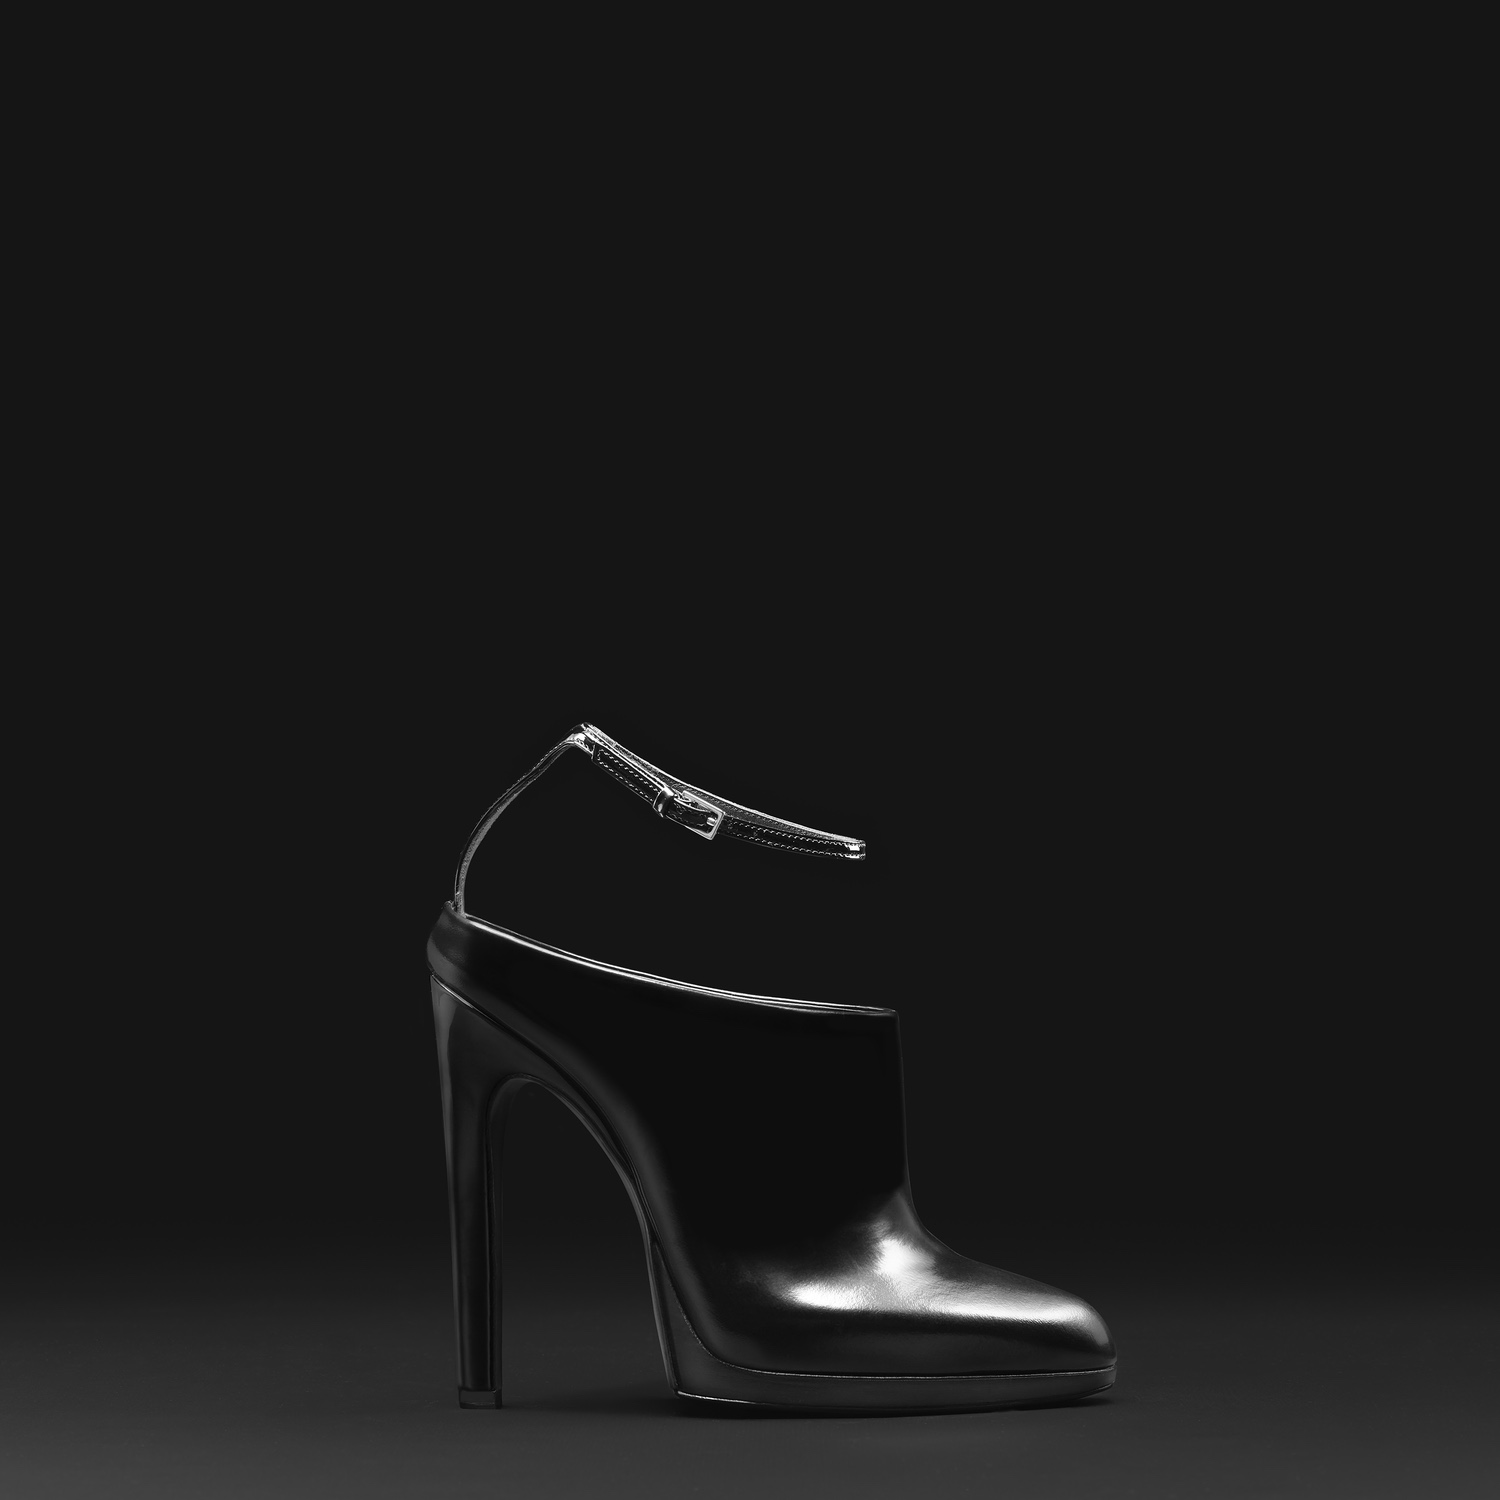 ALAINTONDOWSKI_FALLWINTER2015_SHOES_AT0062